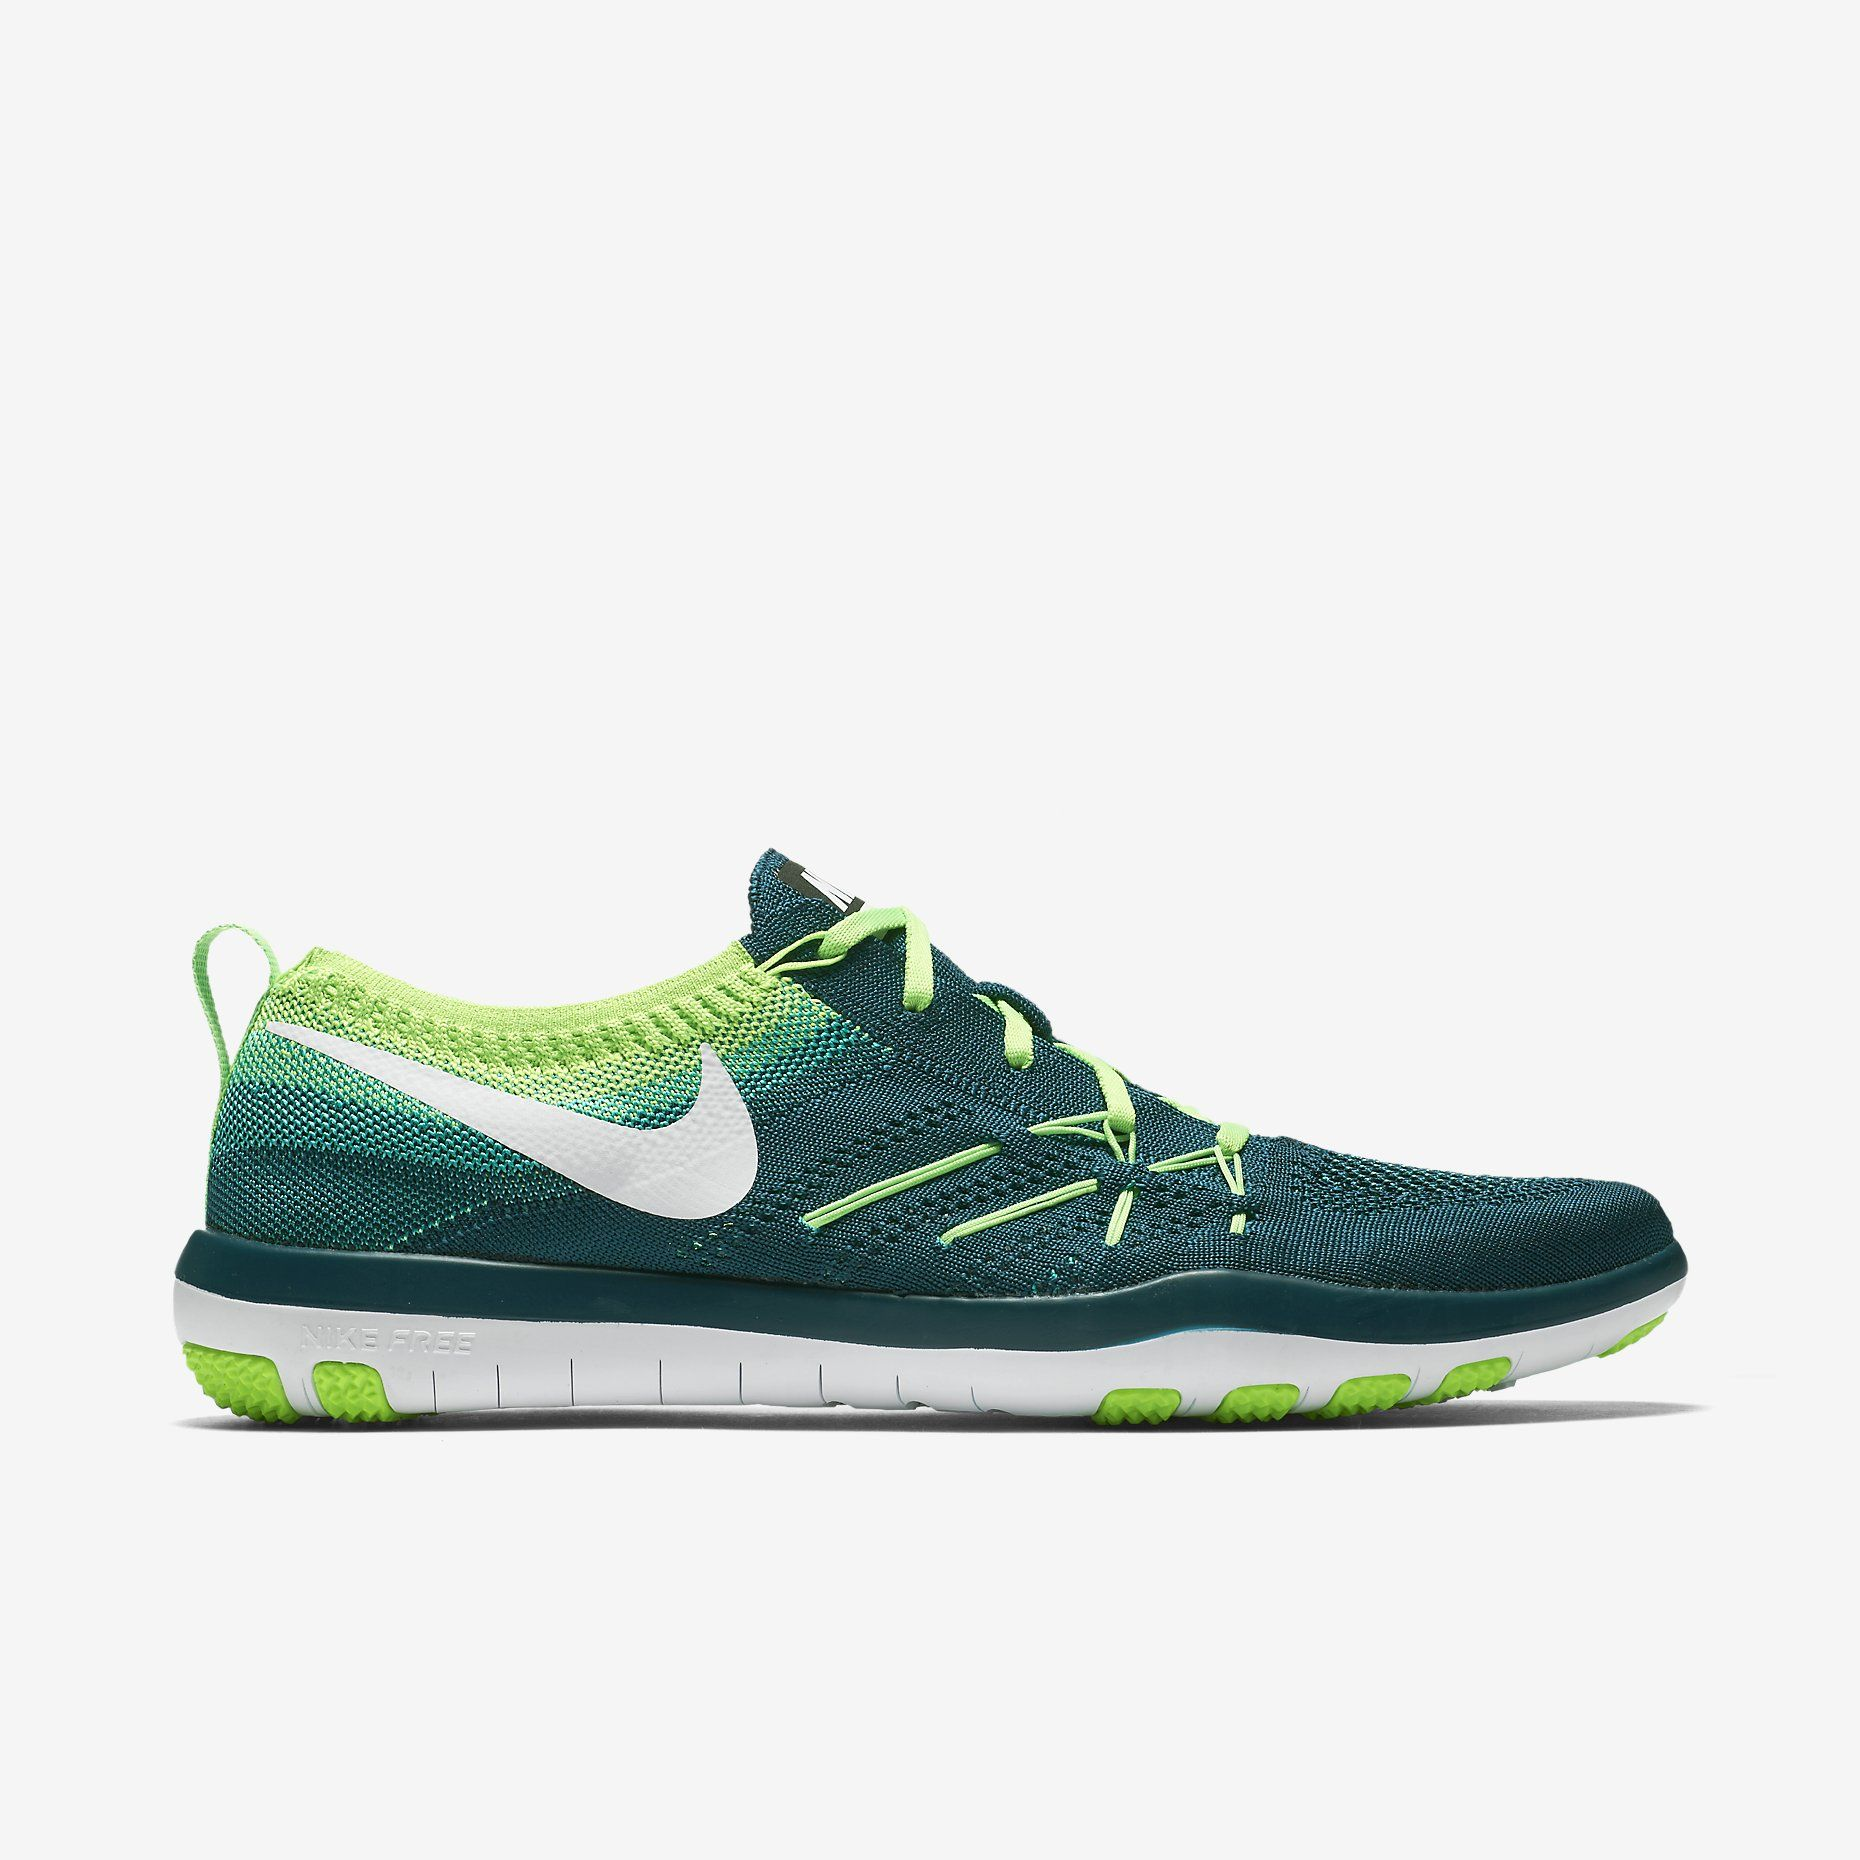 Womens NIKE FREE TR FOCUS FLYKNIT Trainers 844817 301